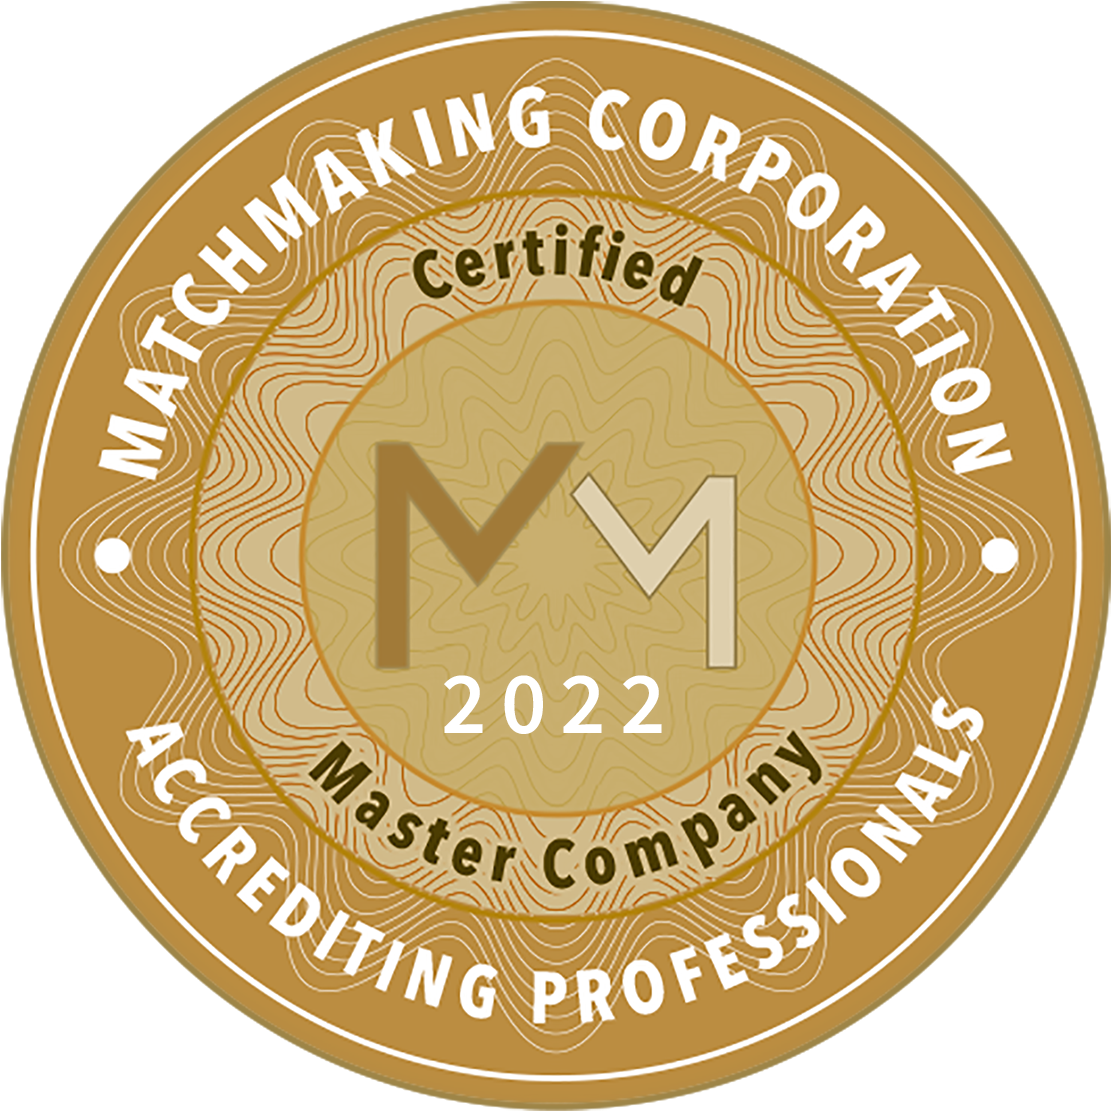 Certified Master Matchmaking Company